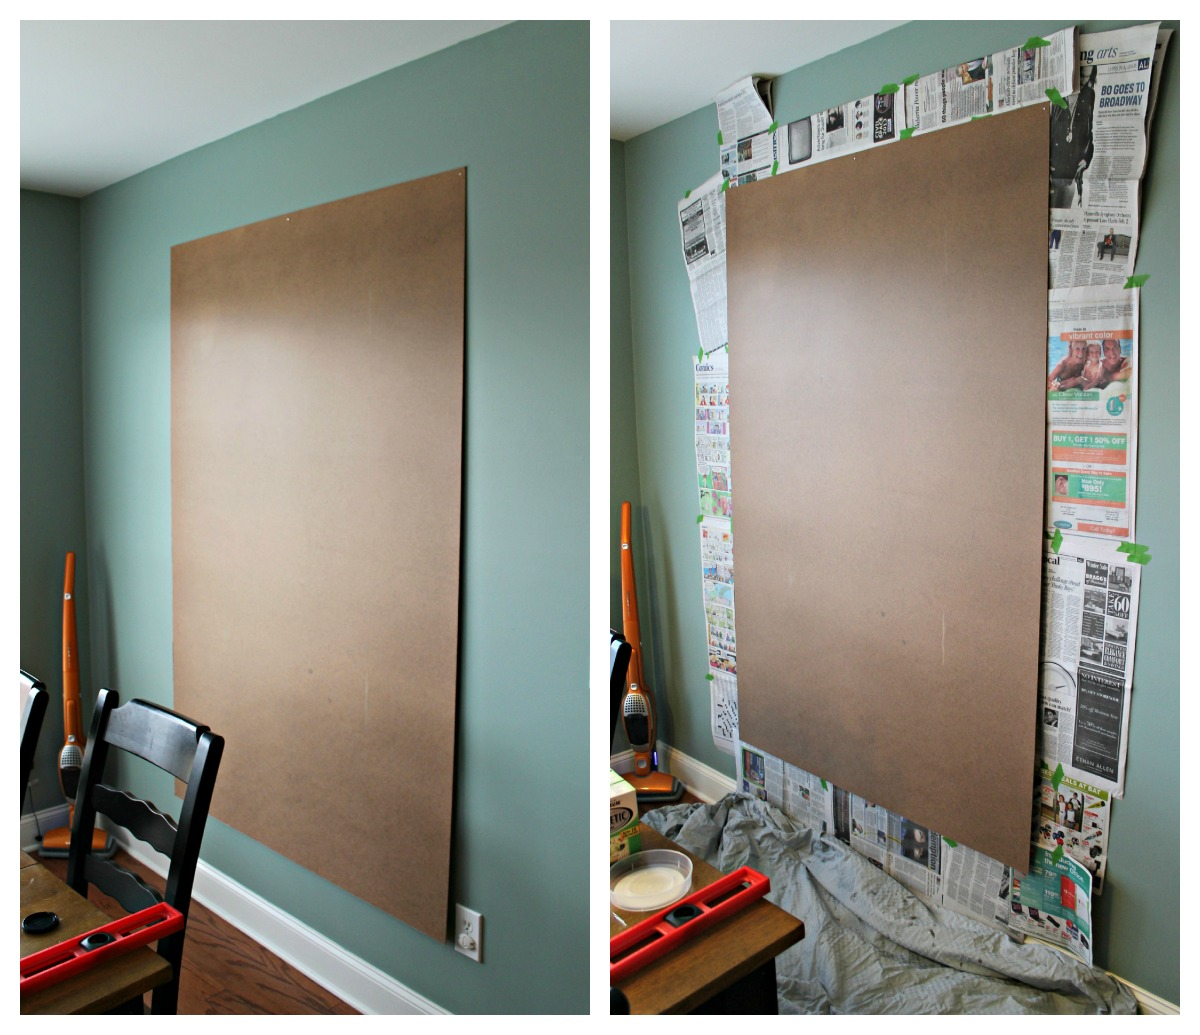 How to make an easy diy giant magnetic chalkboard easy diy giant magnetic chalkboard amipublicfo Images